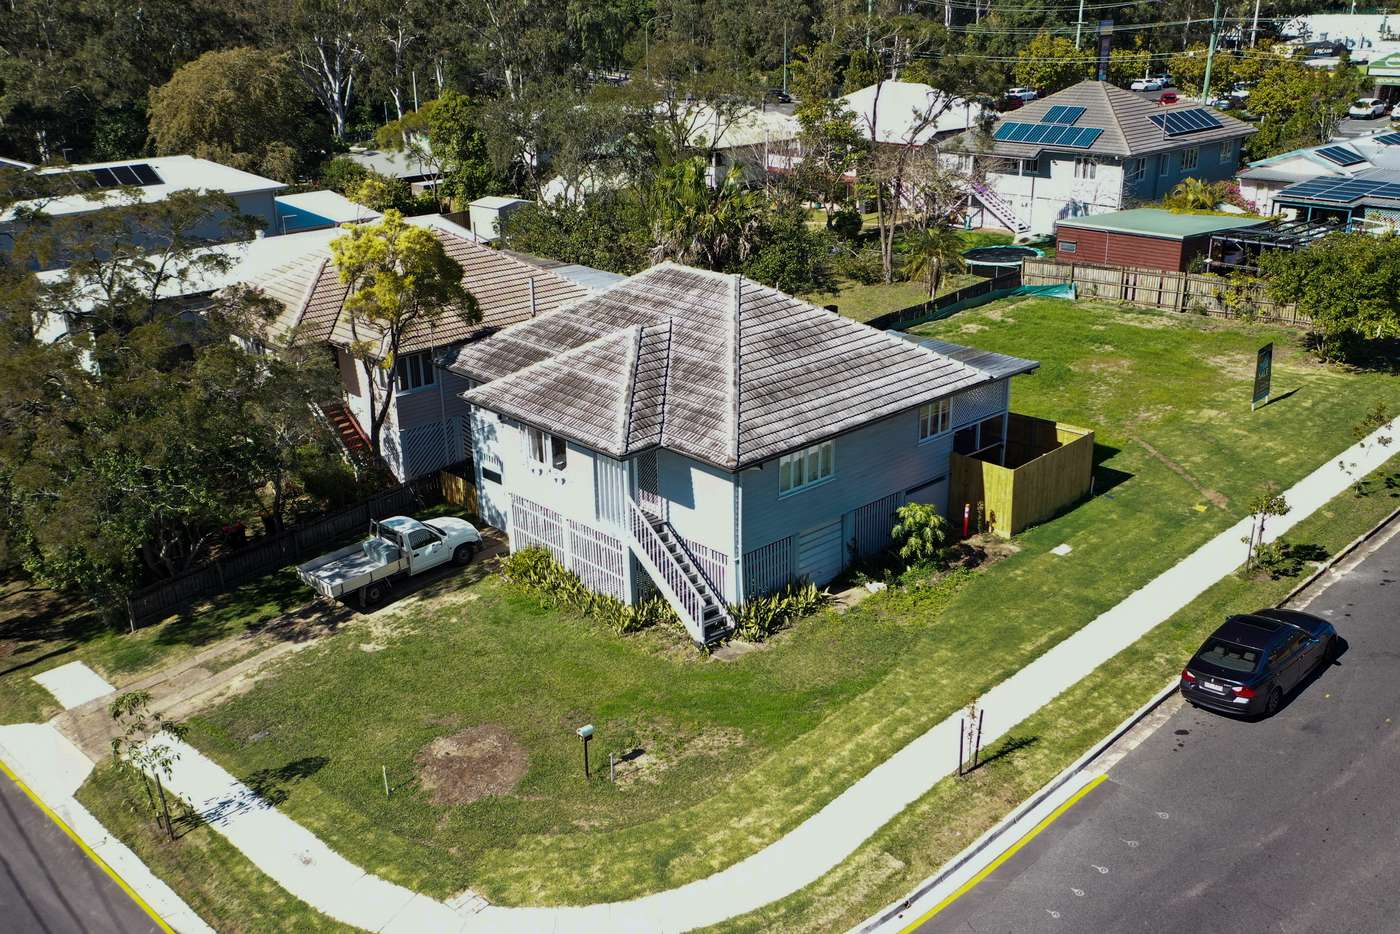 Main view of Homely house listing, 12 Romea Street, The Gap QLD 4061